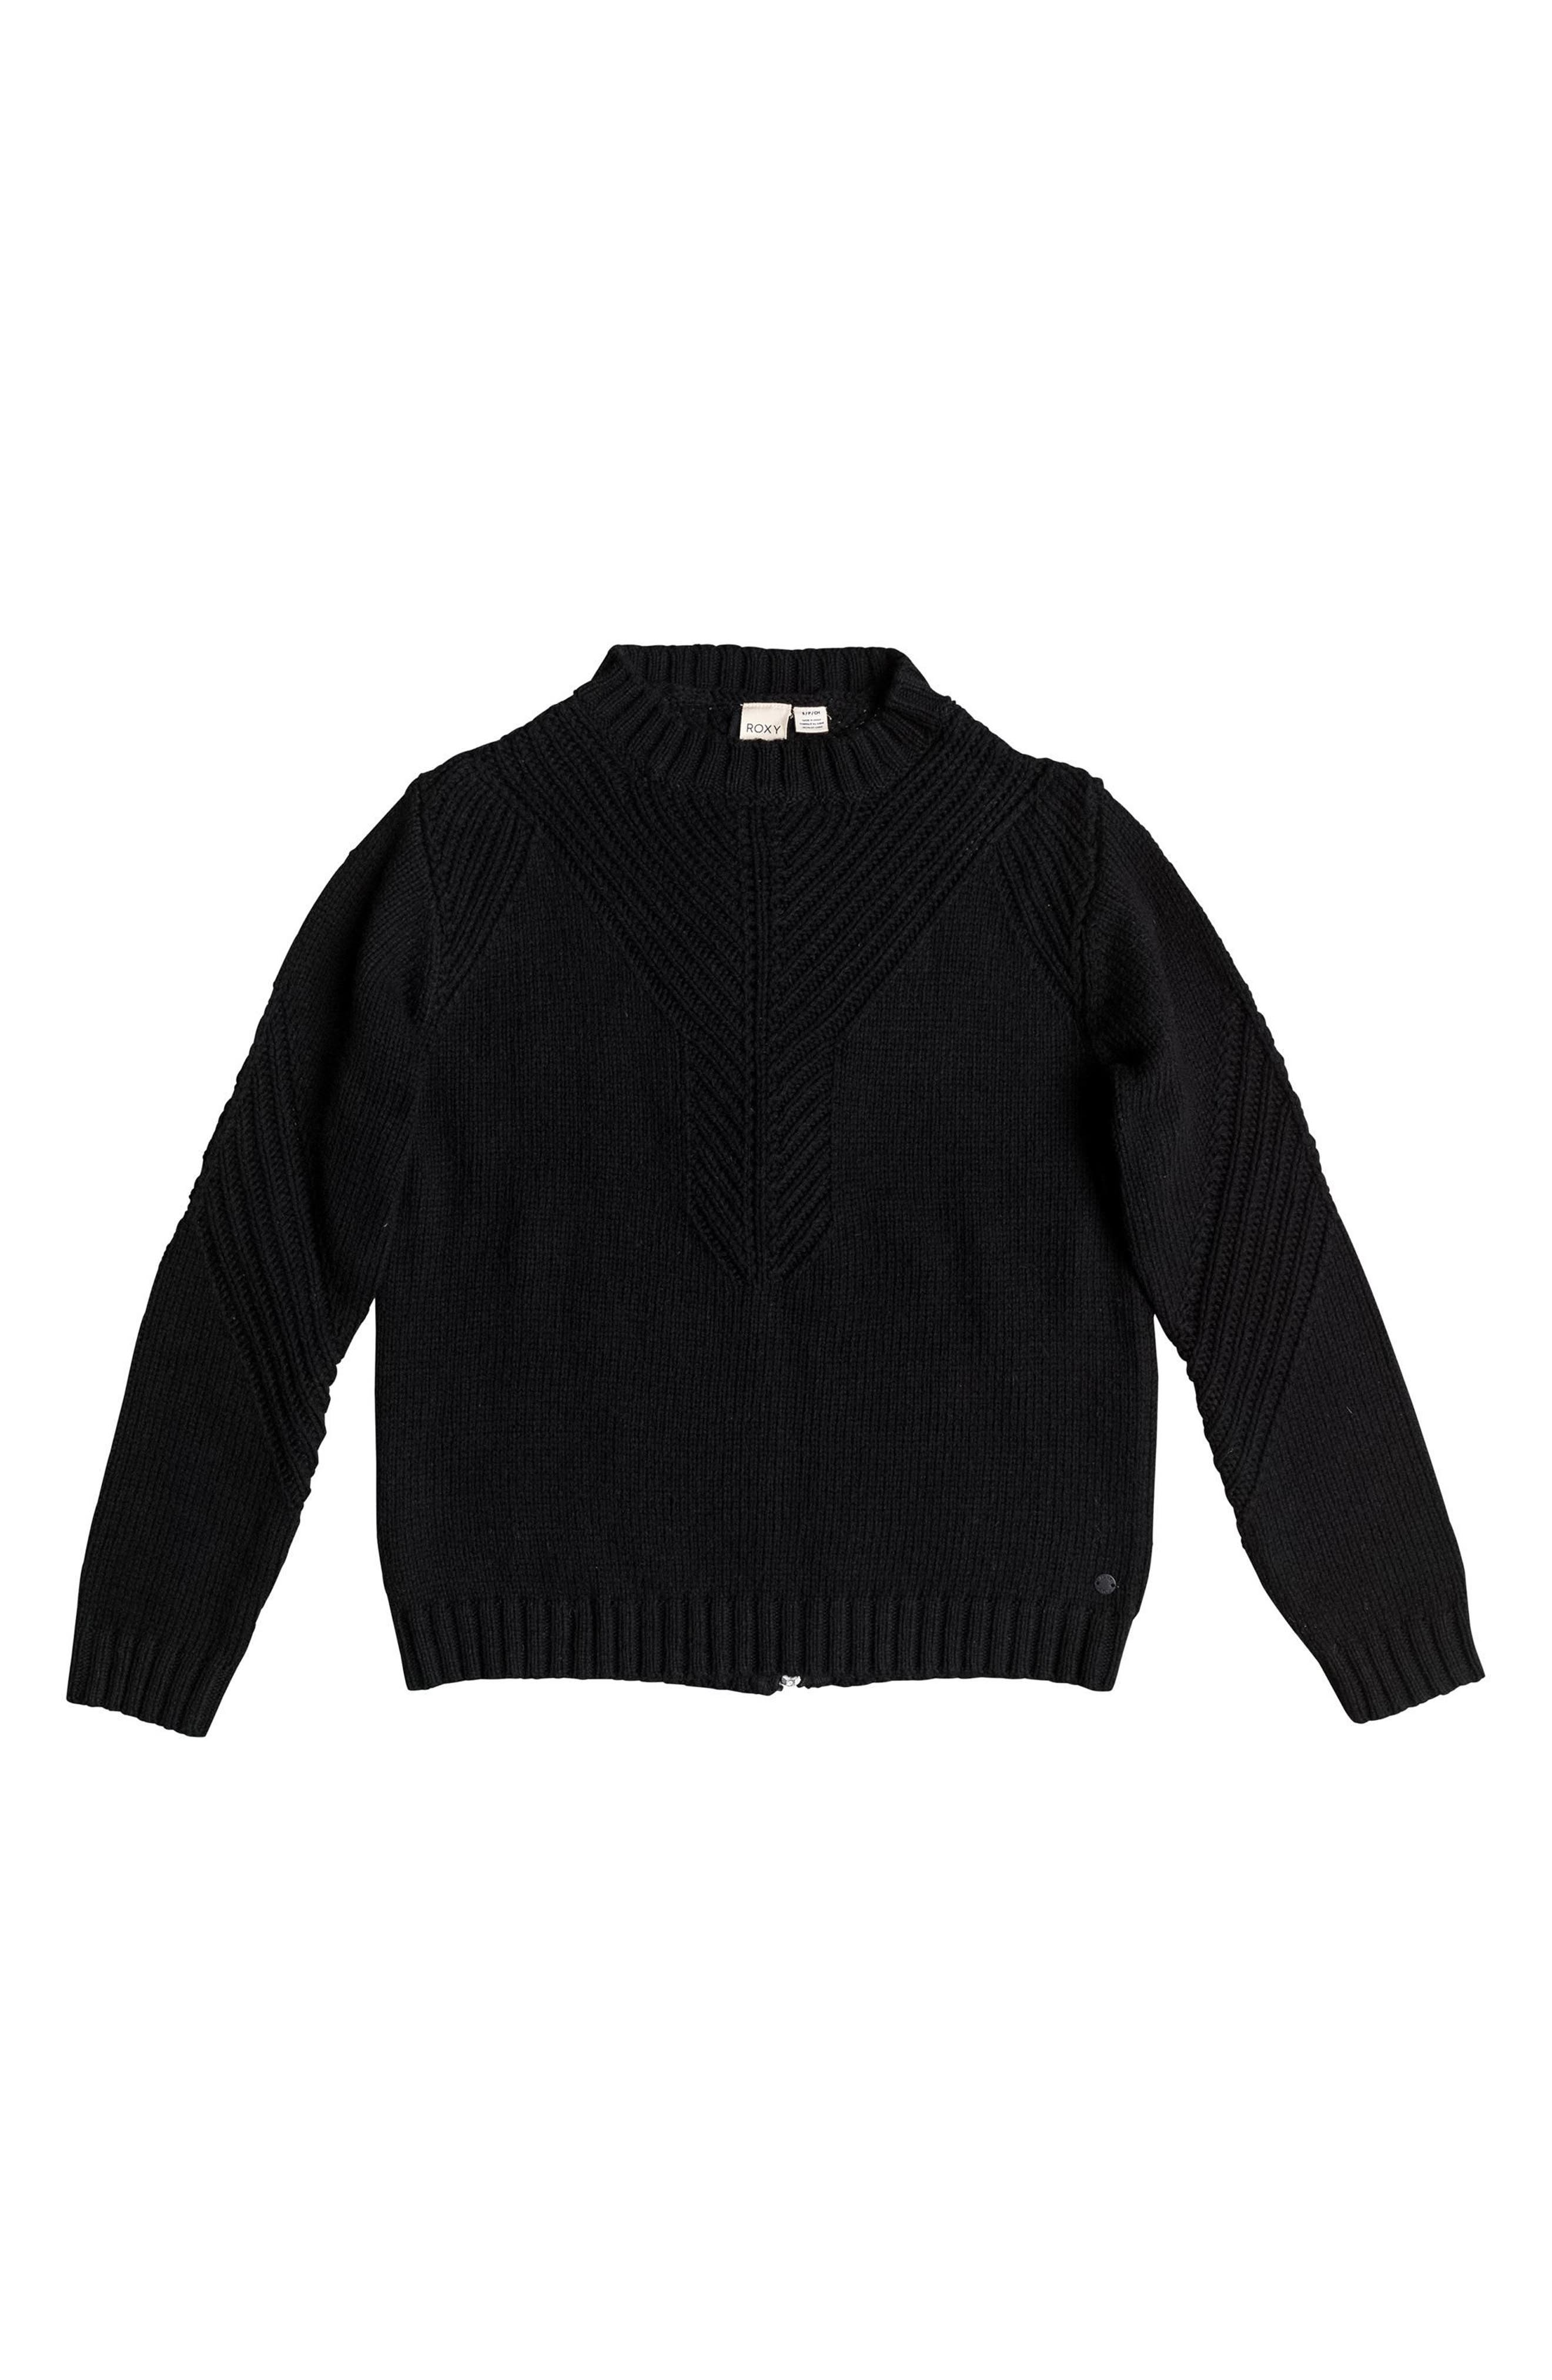 Take Over the World Sweater,                             Alternate thumbnail 3, color,                             Anthracite